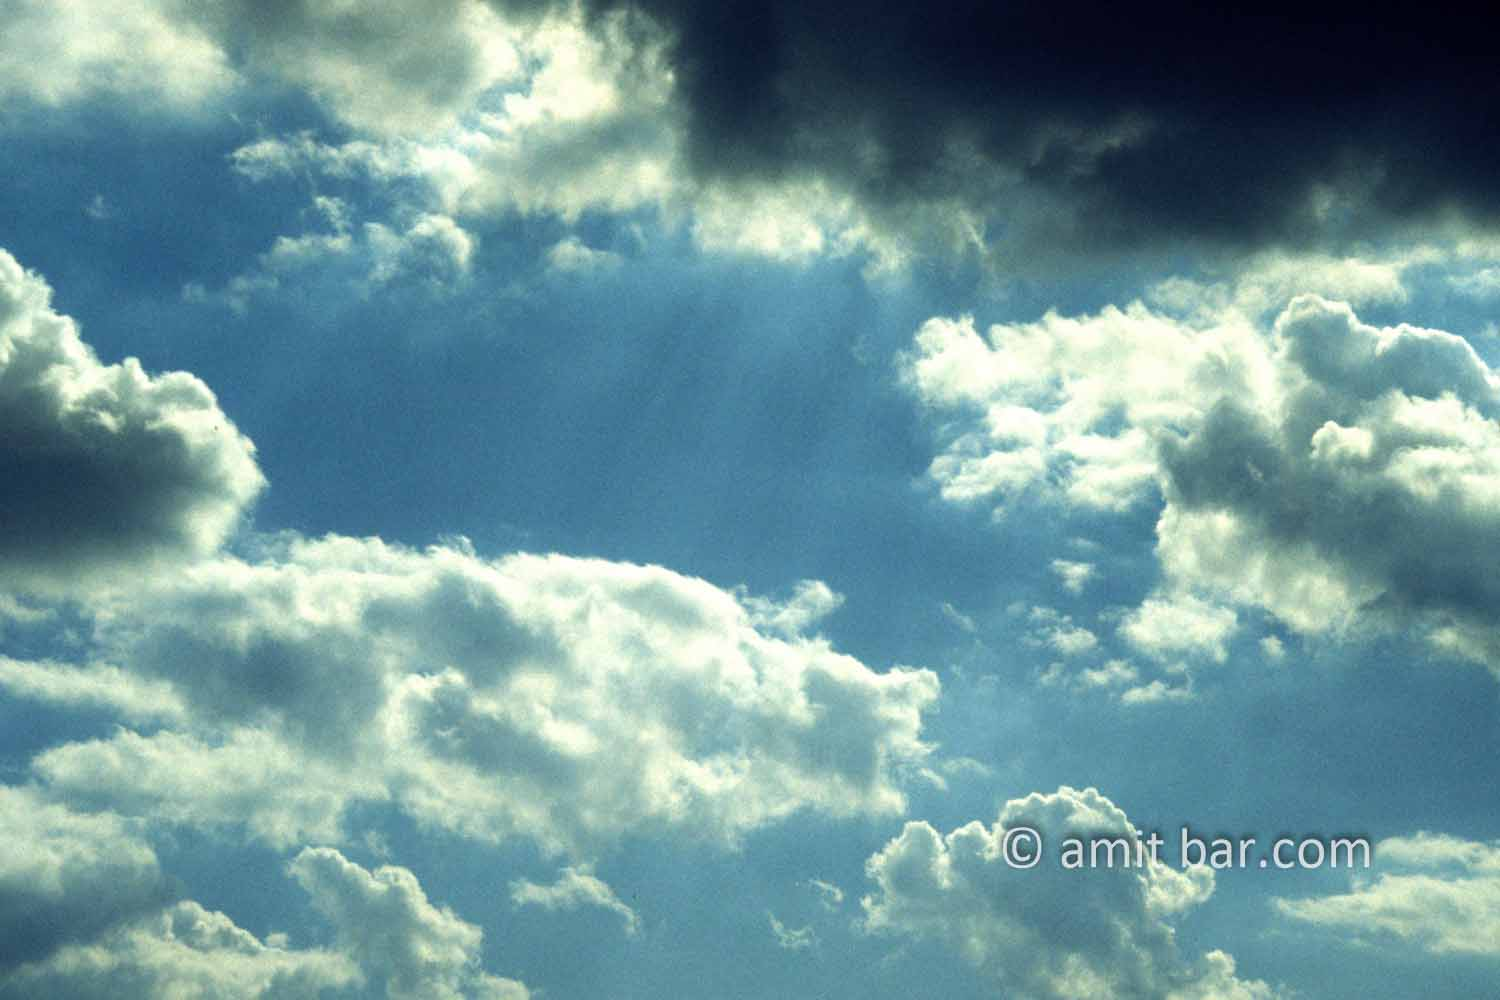 Clouds V: black and white clouds in blue sky